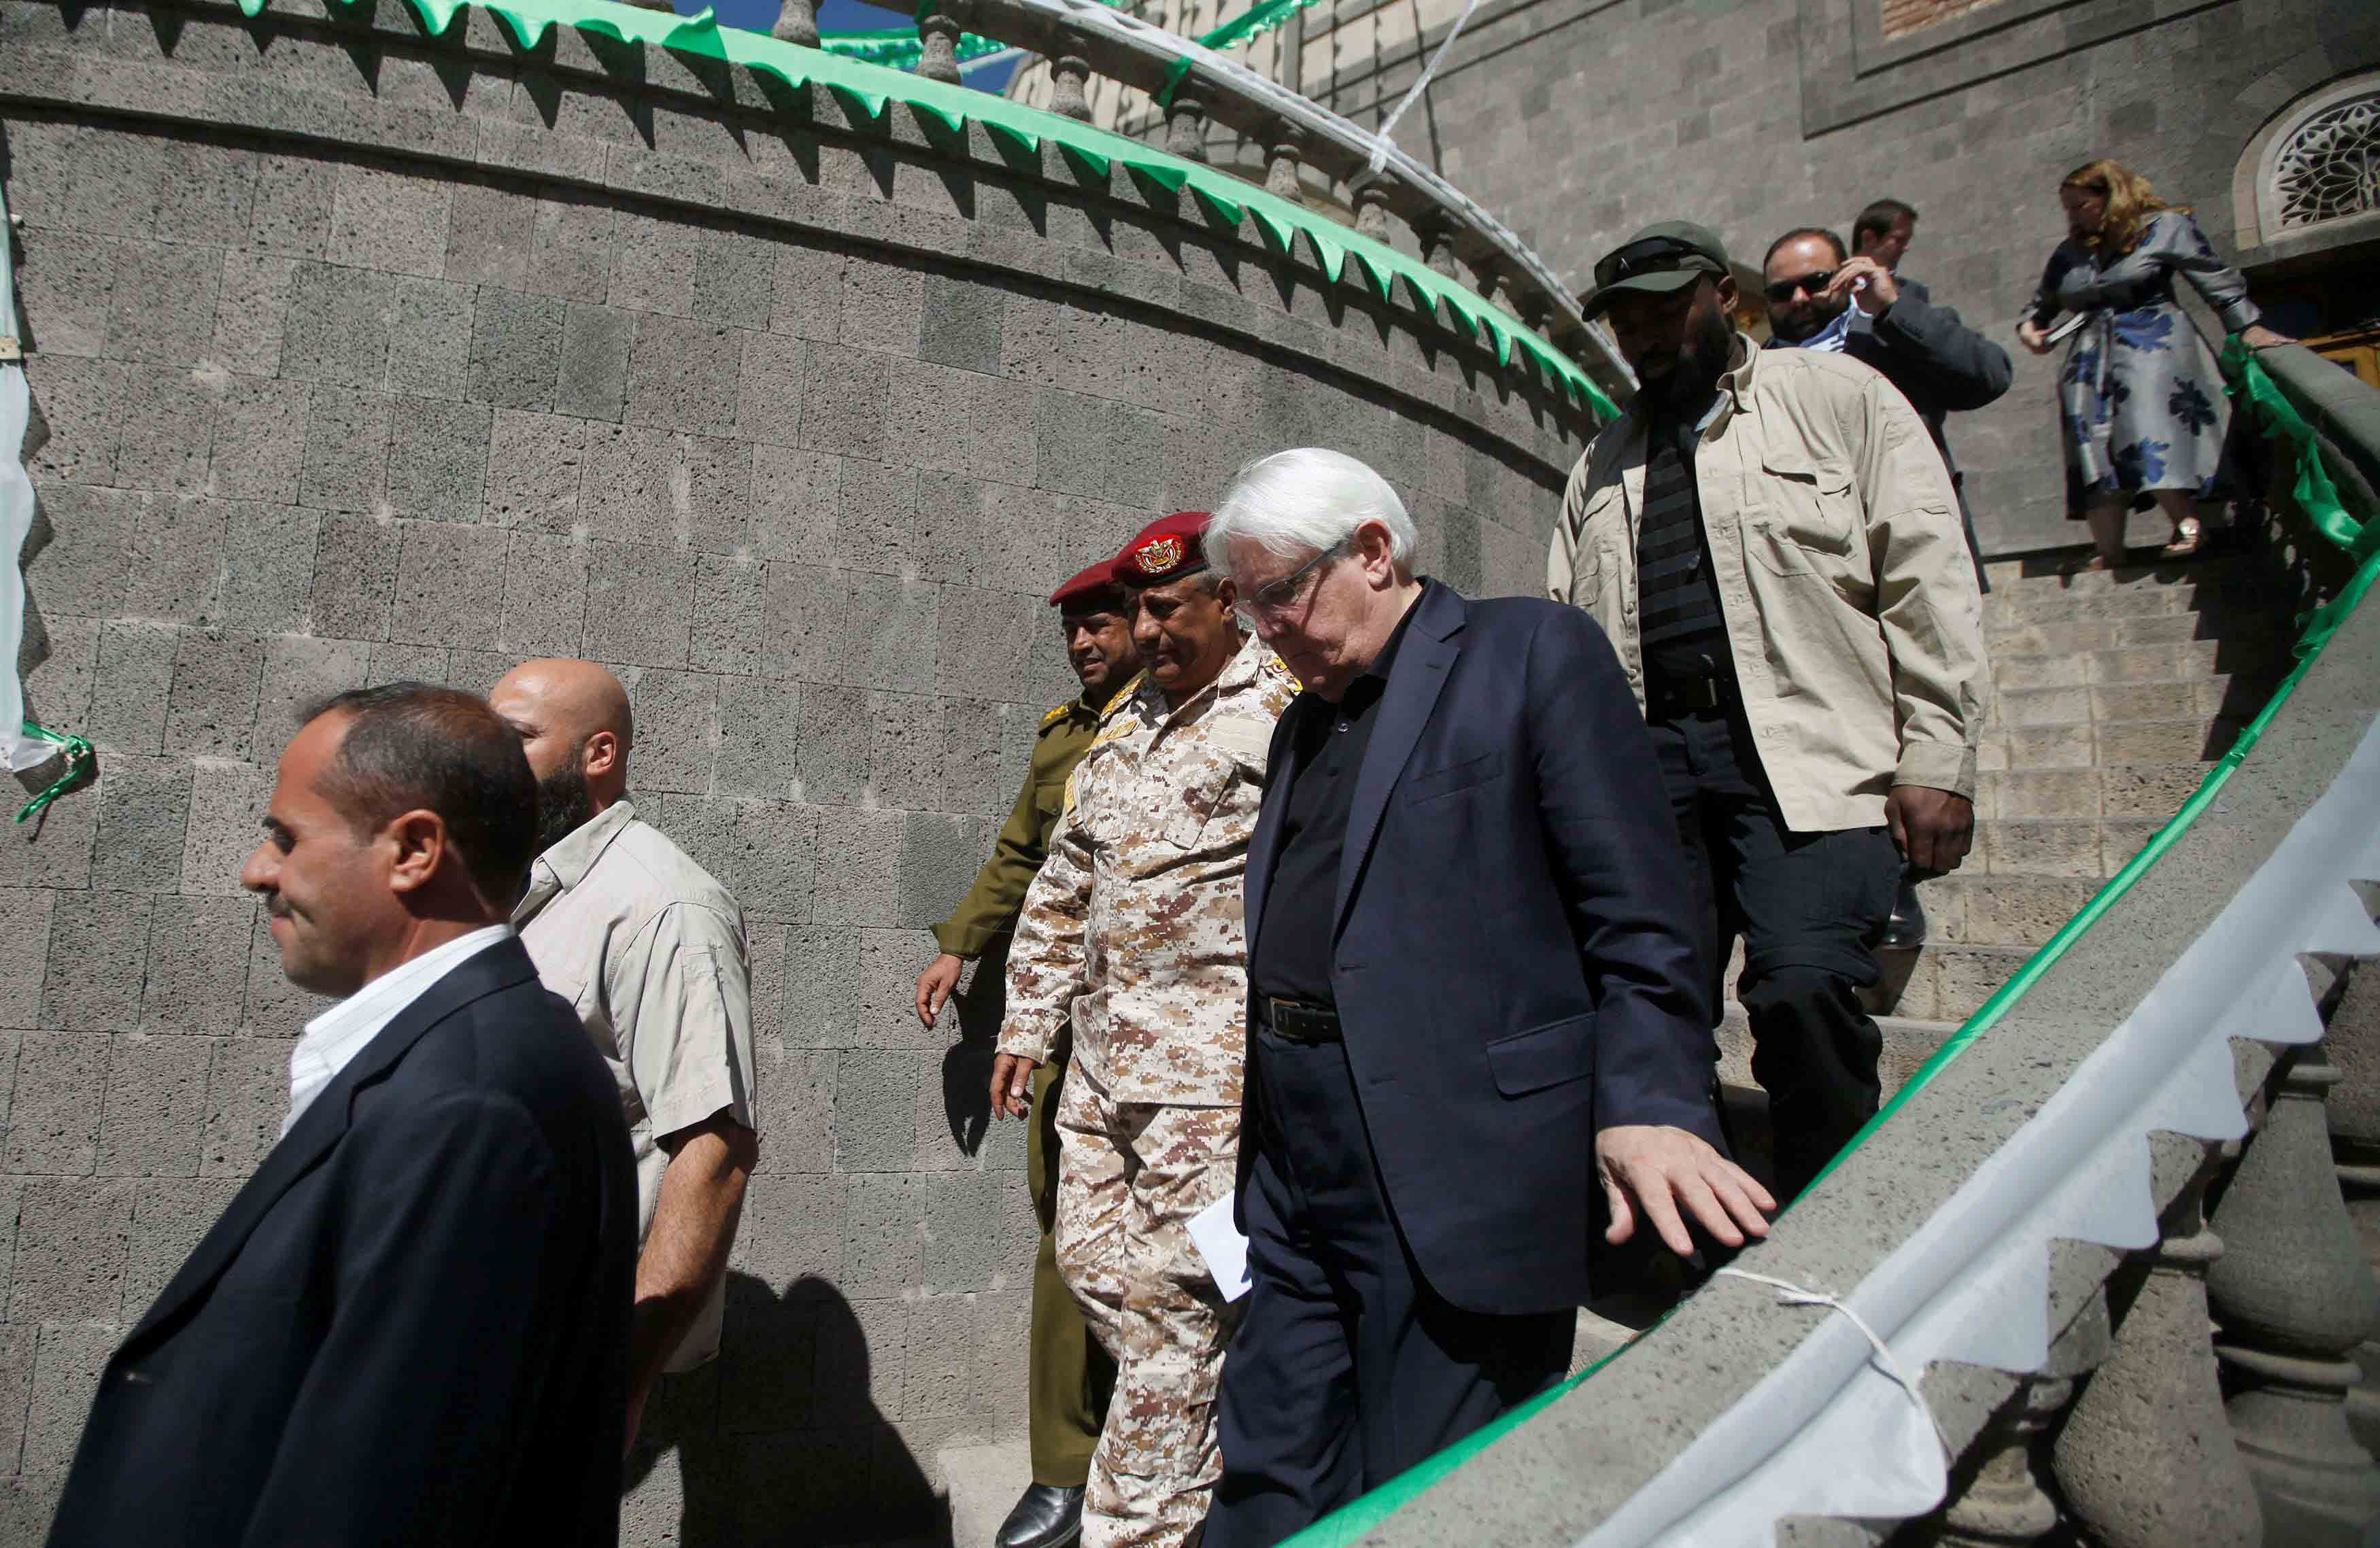 UN Special Envoy to Yemen Martin Griffiths (C) walks after meeting with Mohamed Ali al-Houthi, head of the Houthi Supreme Revolutionary Committee in Sana'a, November 24. (Reuters)